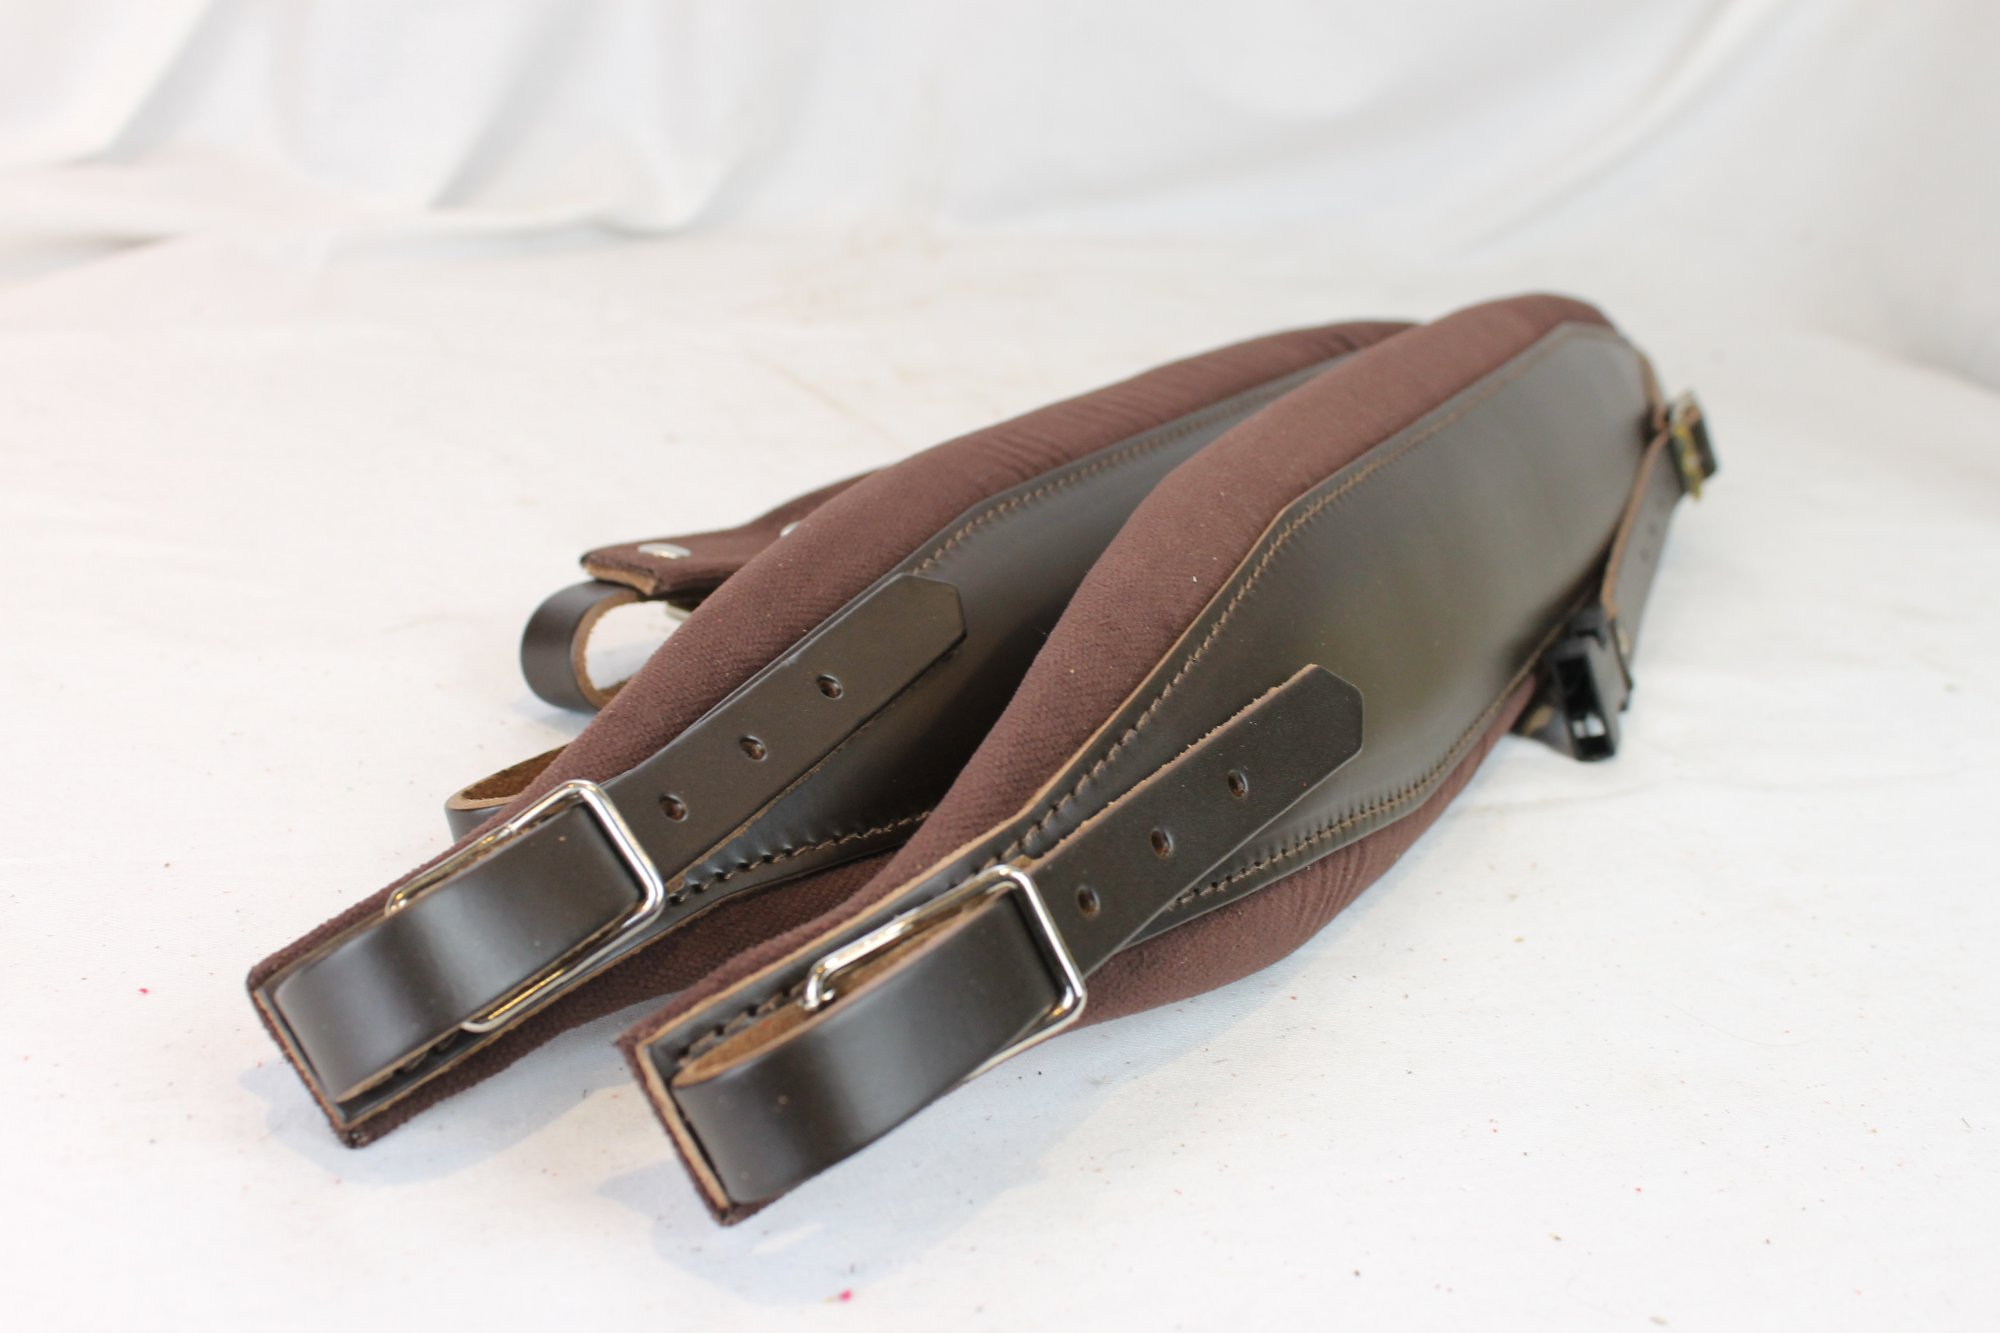 New Brown Leather Velour Fuselli Accordion Shoulder Straps Width (10cm / 3.9in) Length (105~123cm / 41.3~48.4in)